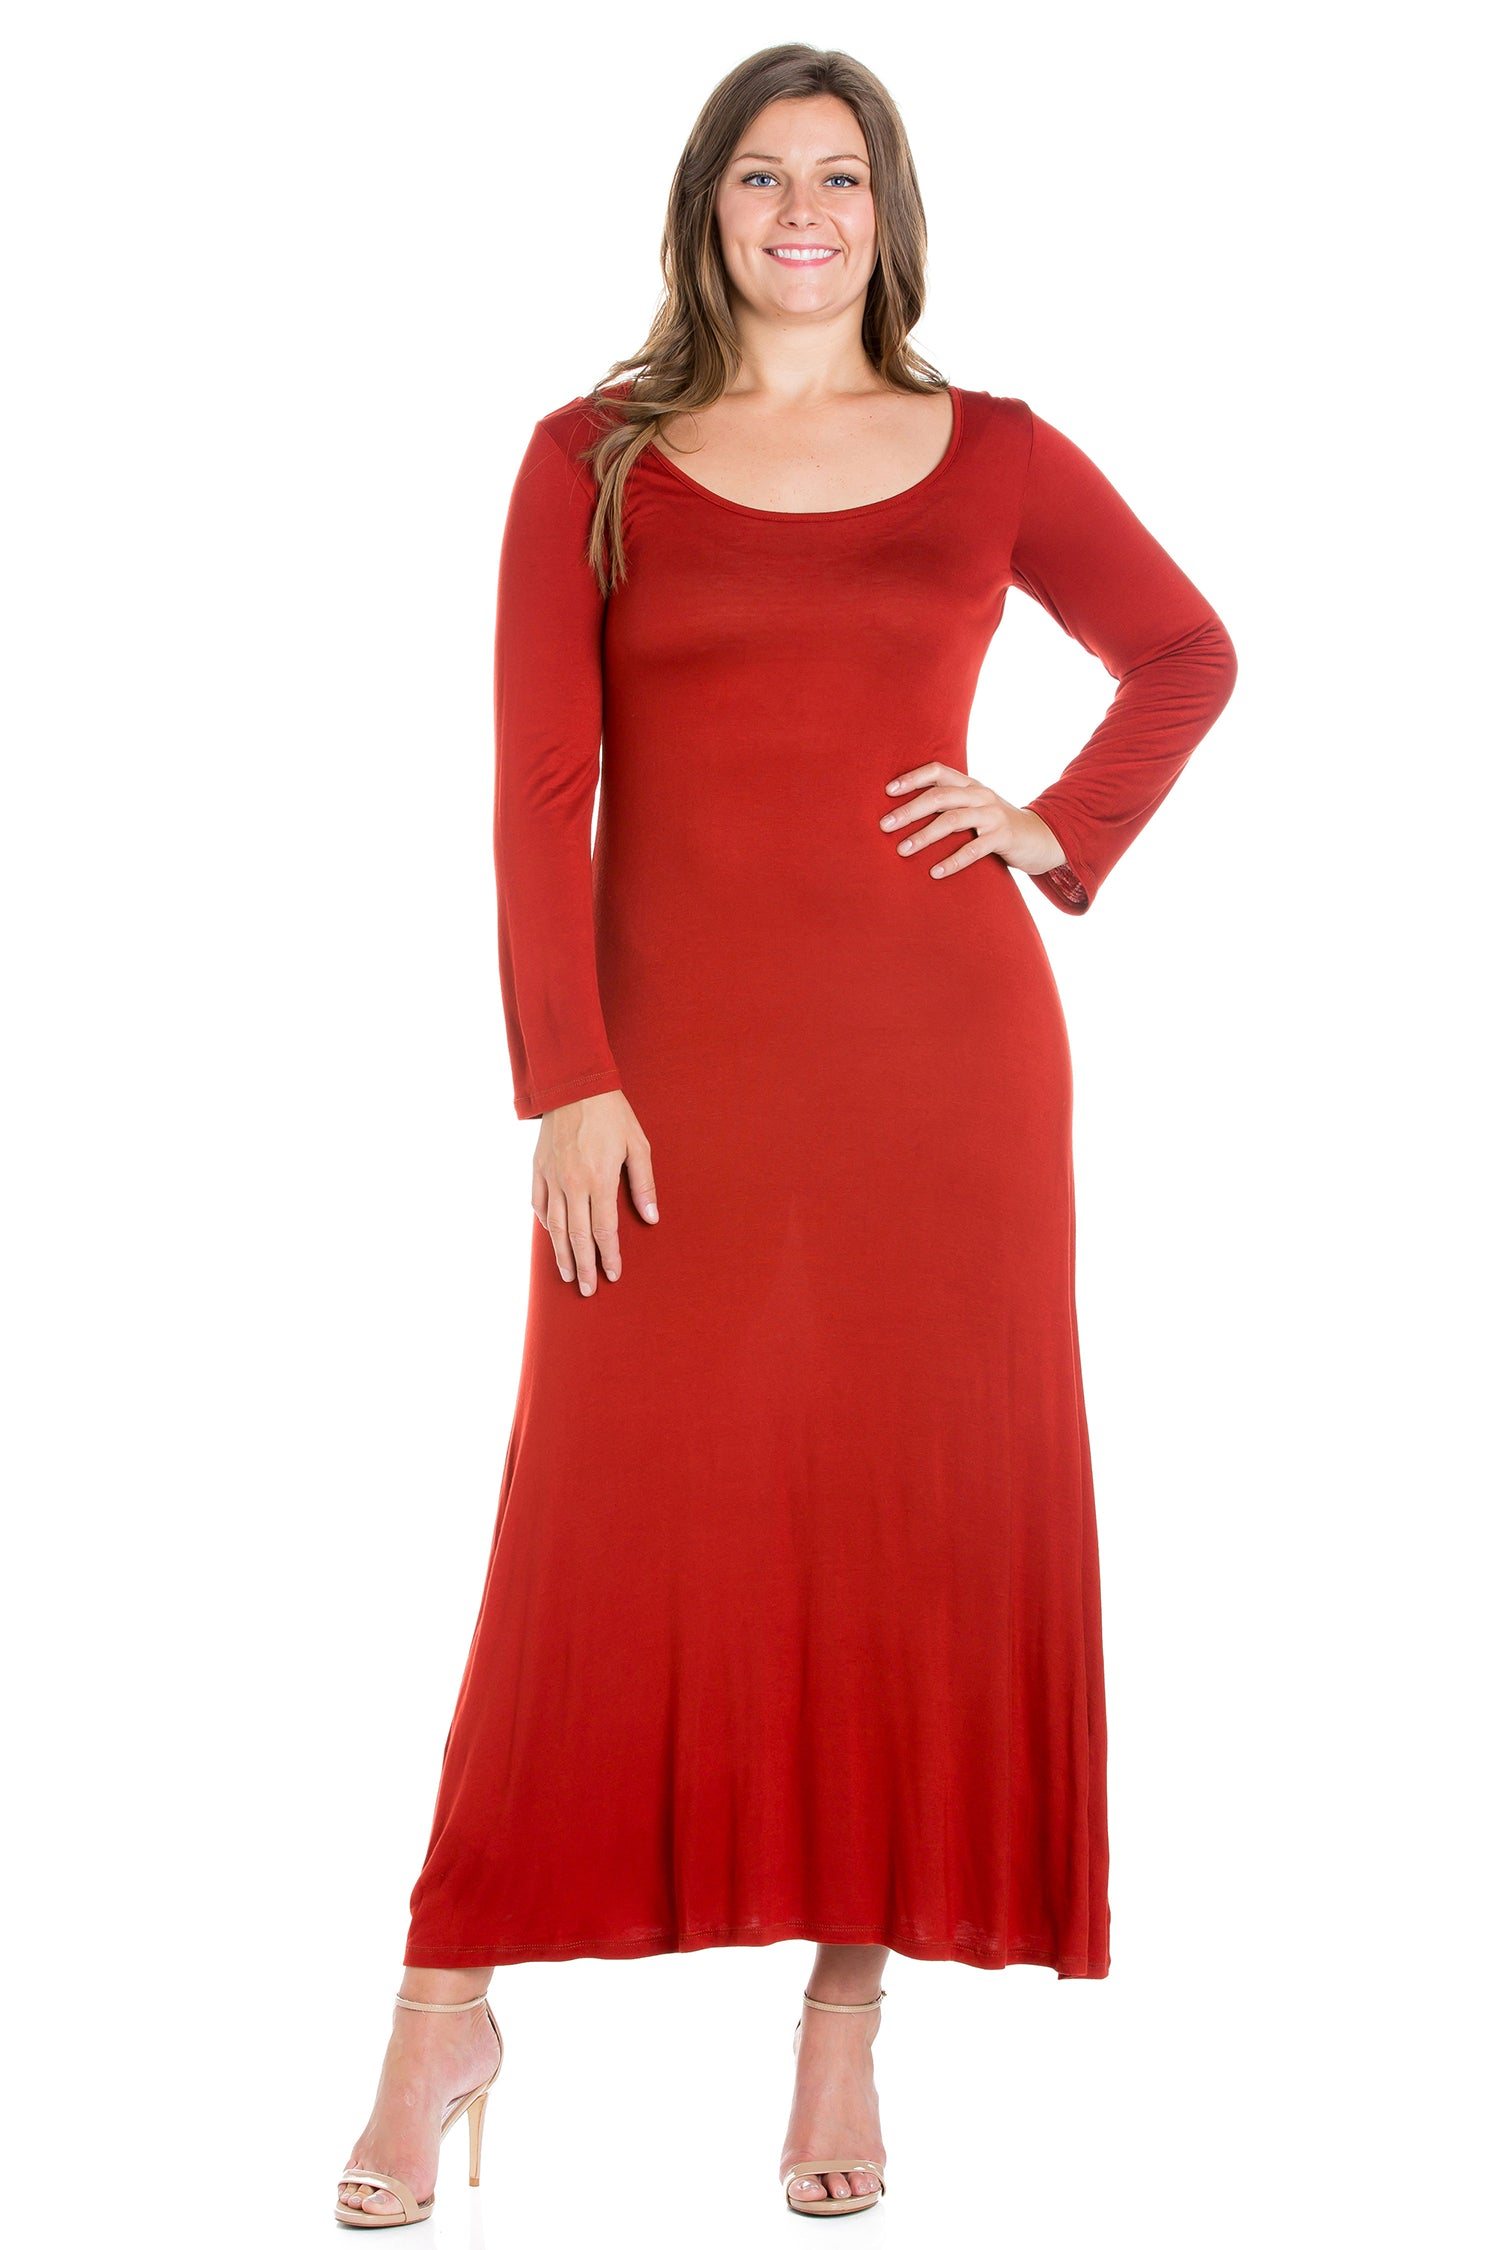 24seven Comfort Apparel Womens Long Sleeve Plus Size Maxi Dress-DRESSES-24Seven Comfort Apparel-PENNY-1X-24/7 Comfort Apparel